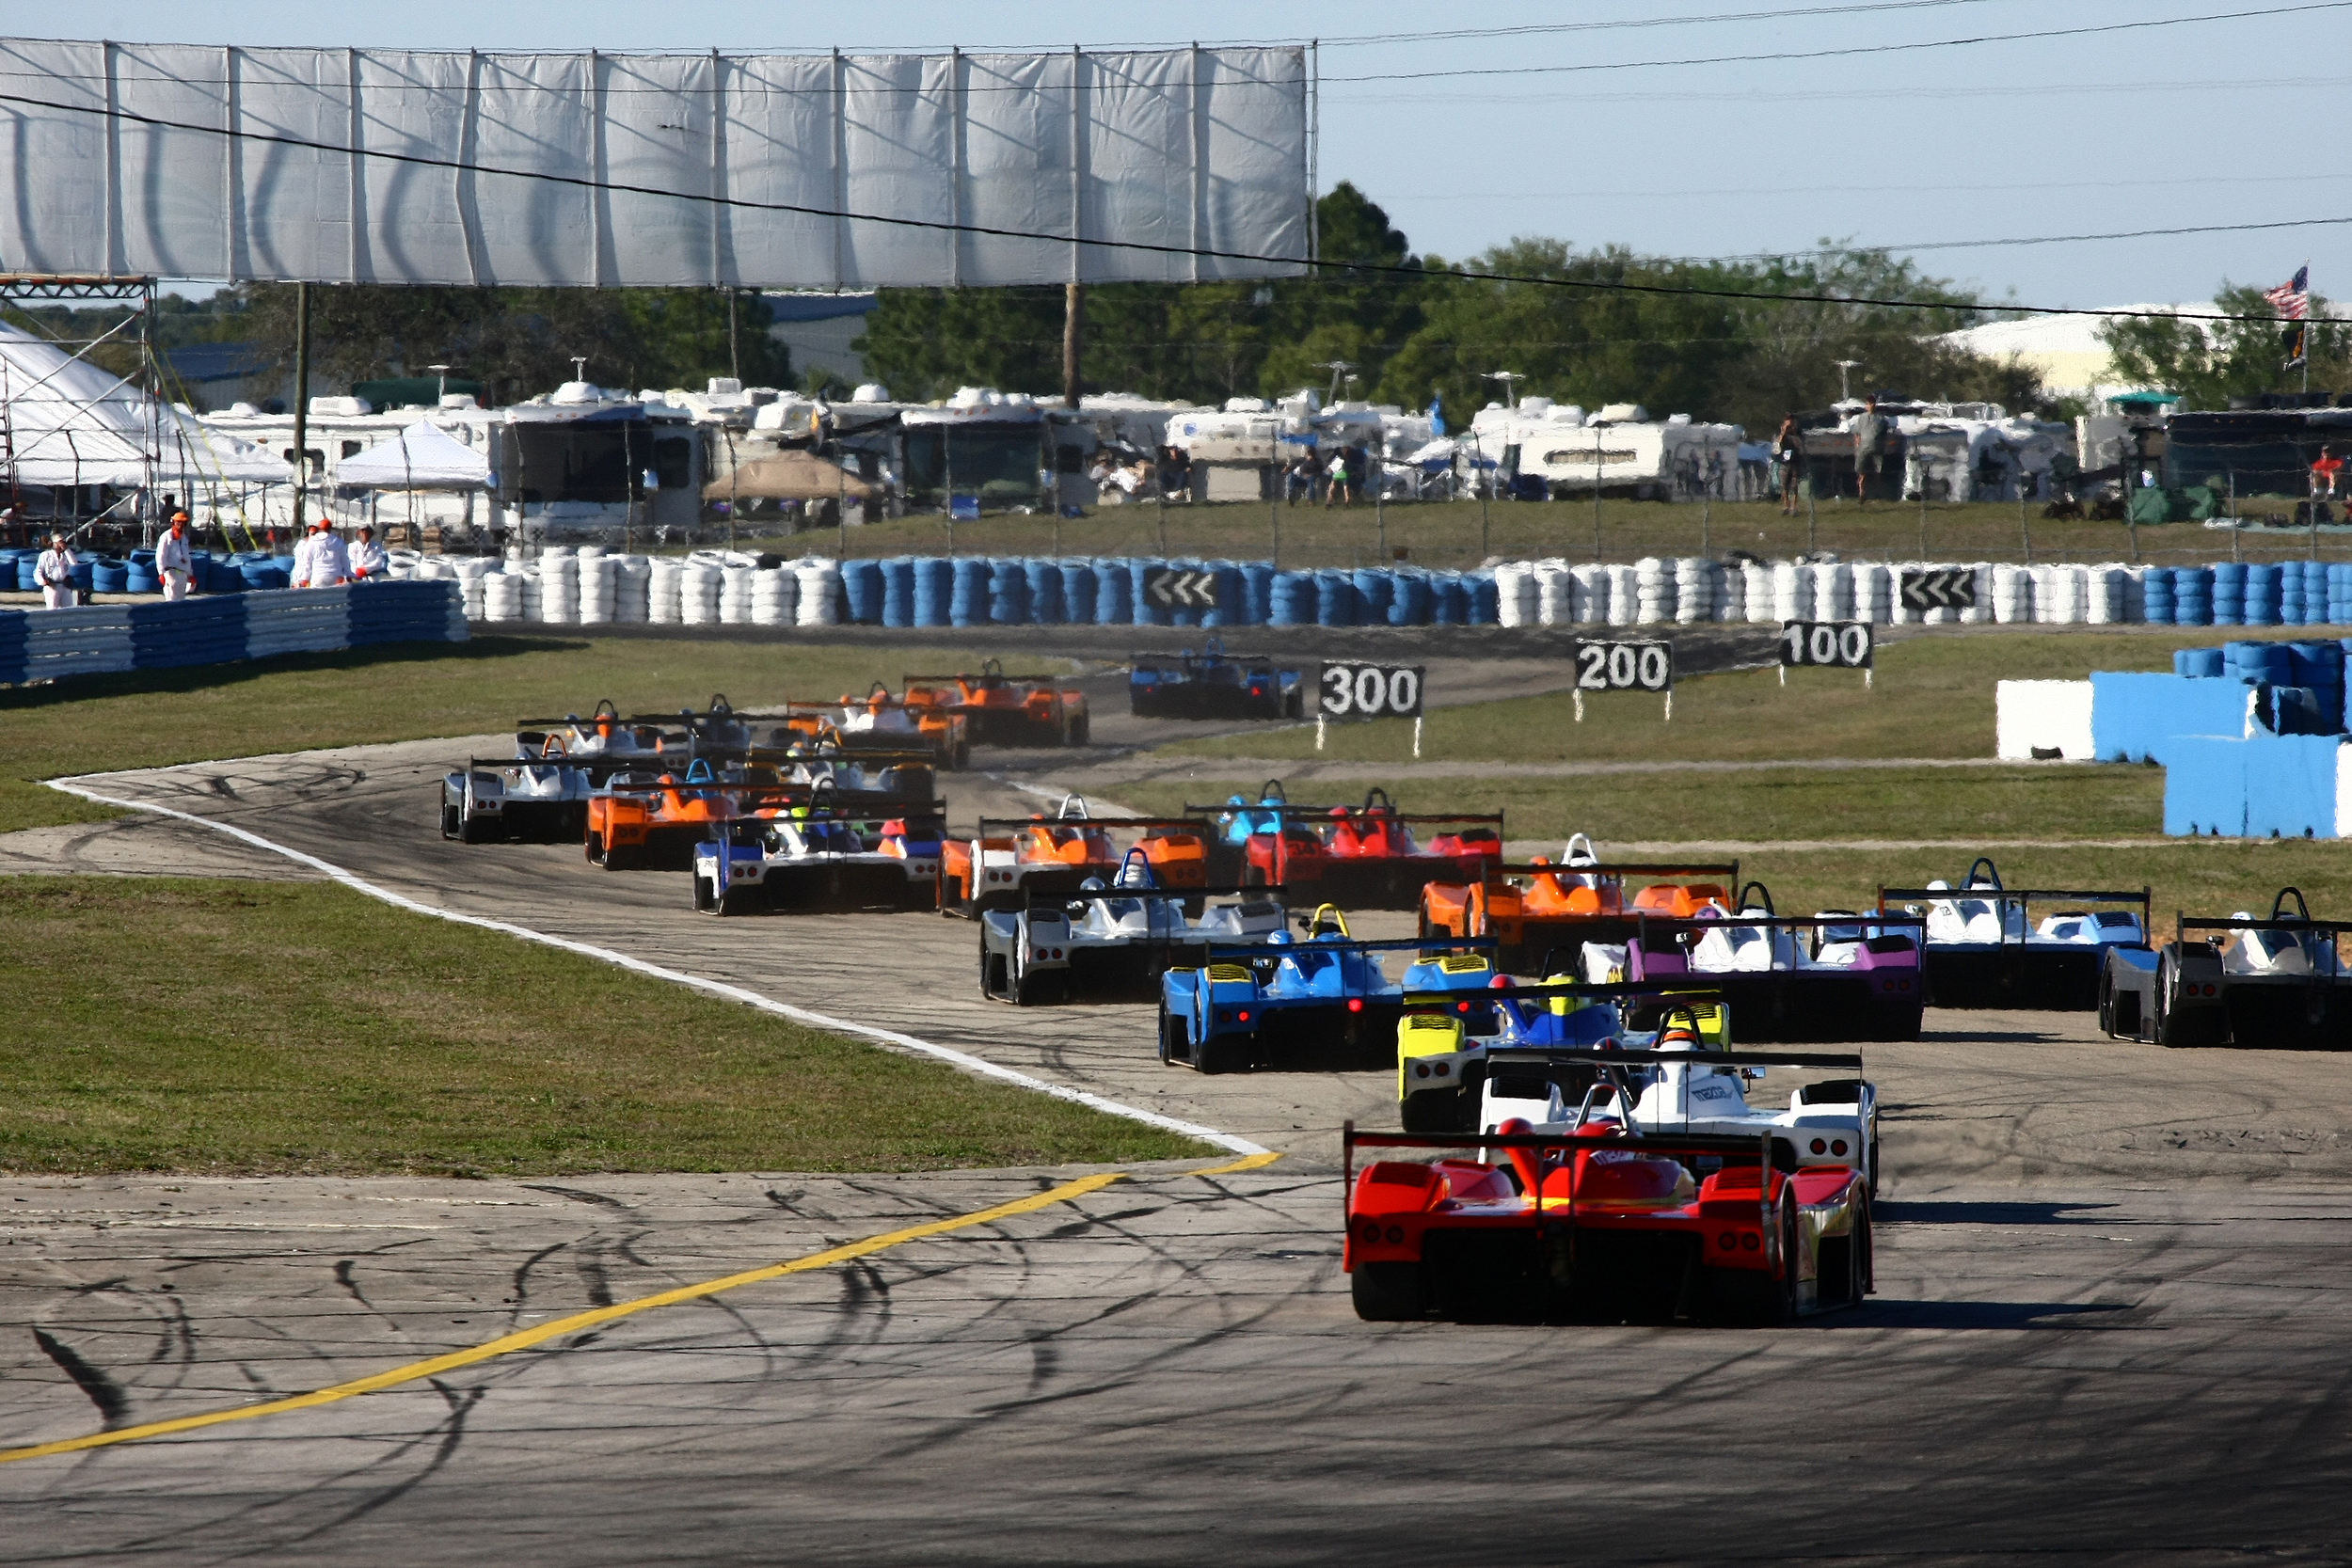 IMSA Sebring Mar.12-15, 2014 ColourTechSouth DL - 8 195.JPG